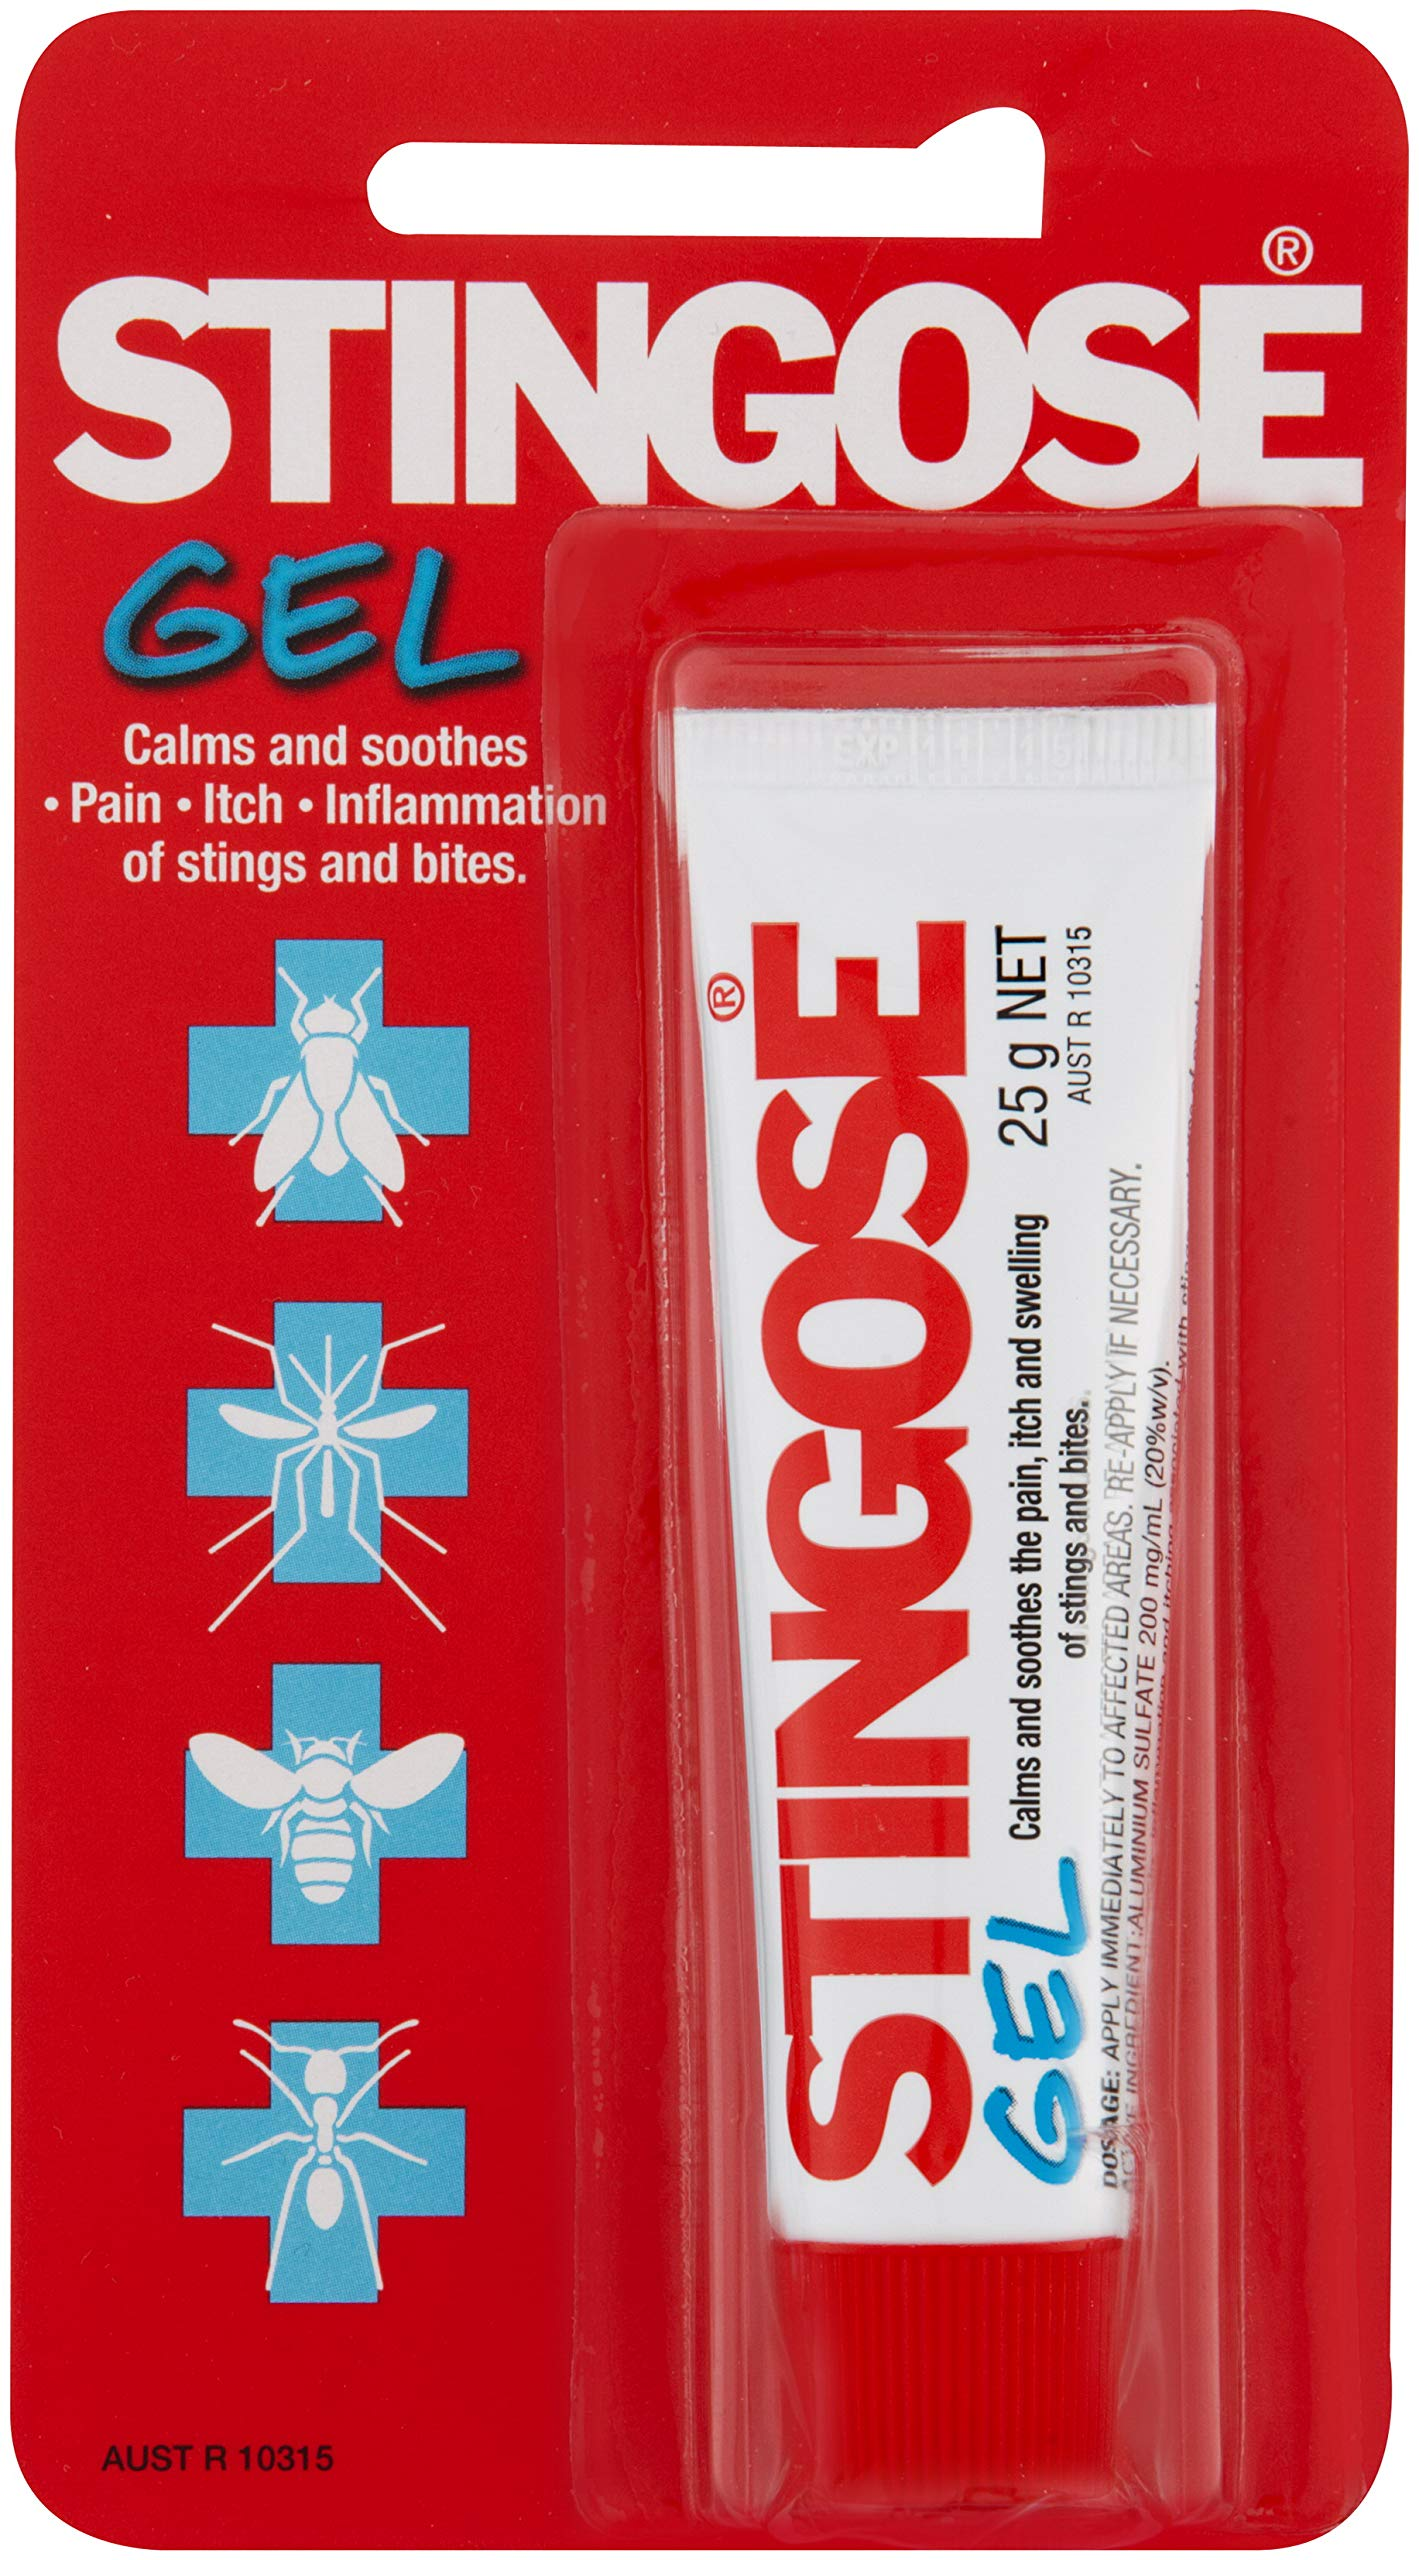 Stigose Gel - Fast Relief of Pain, Itch and Swelling from Bug Bites and Stings.  #1 Treatment in Australia. 25 gr. by Stingose